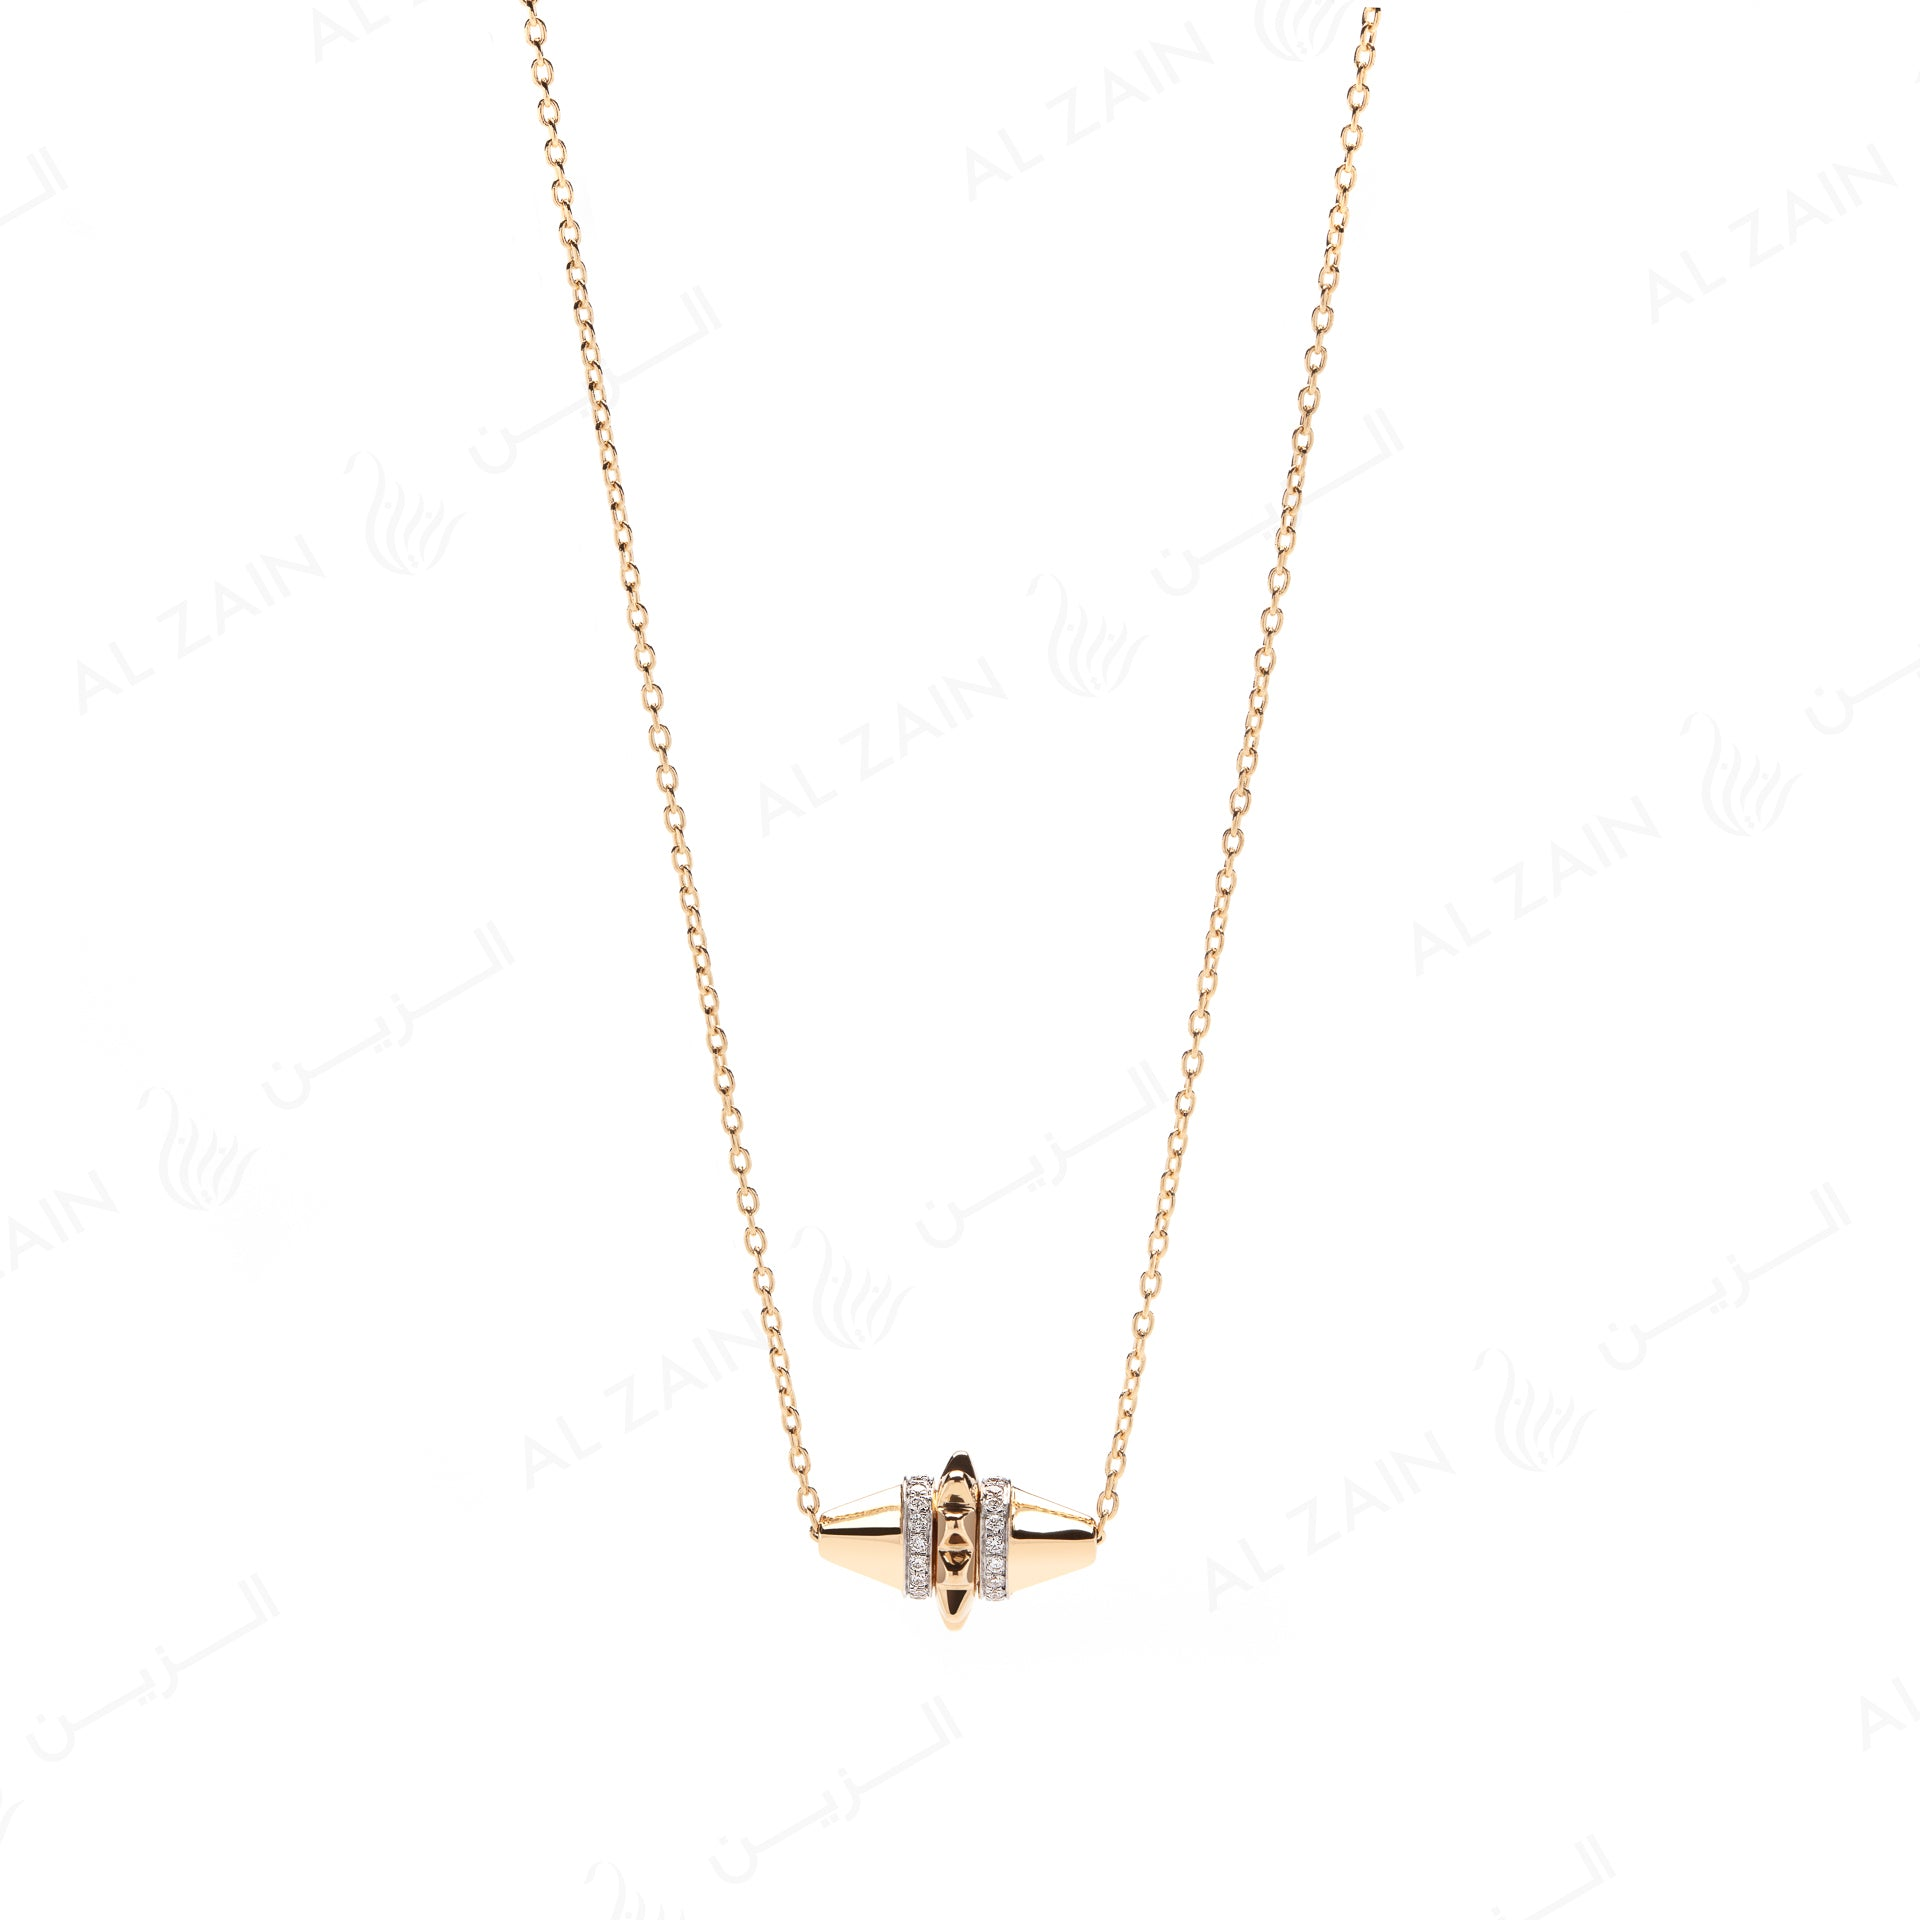 Hab El Hayl Necklace in Yellow Gold with Diamonds - Al Zain Jewellery